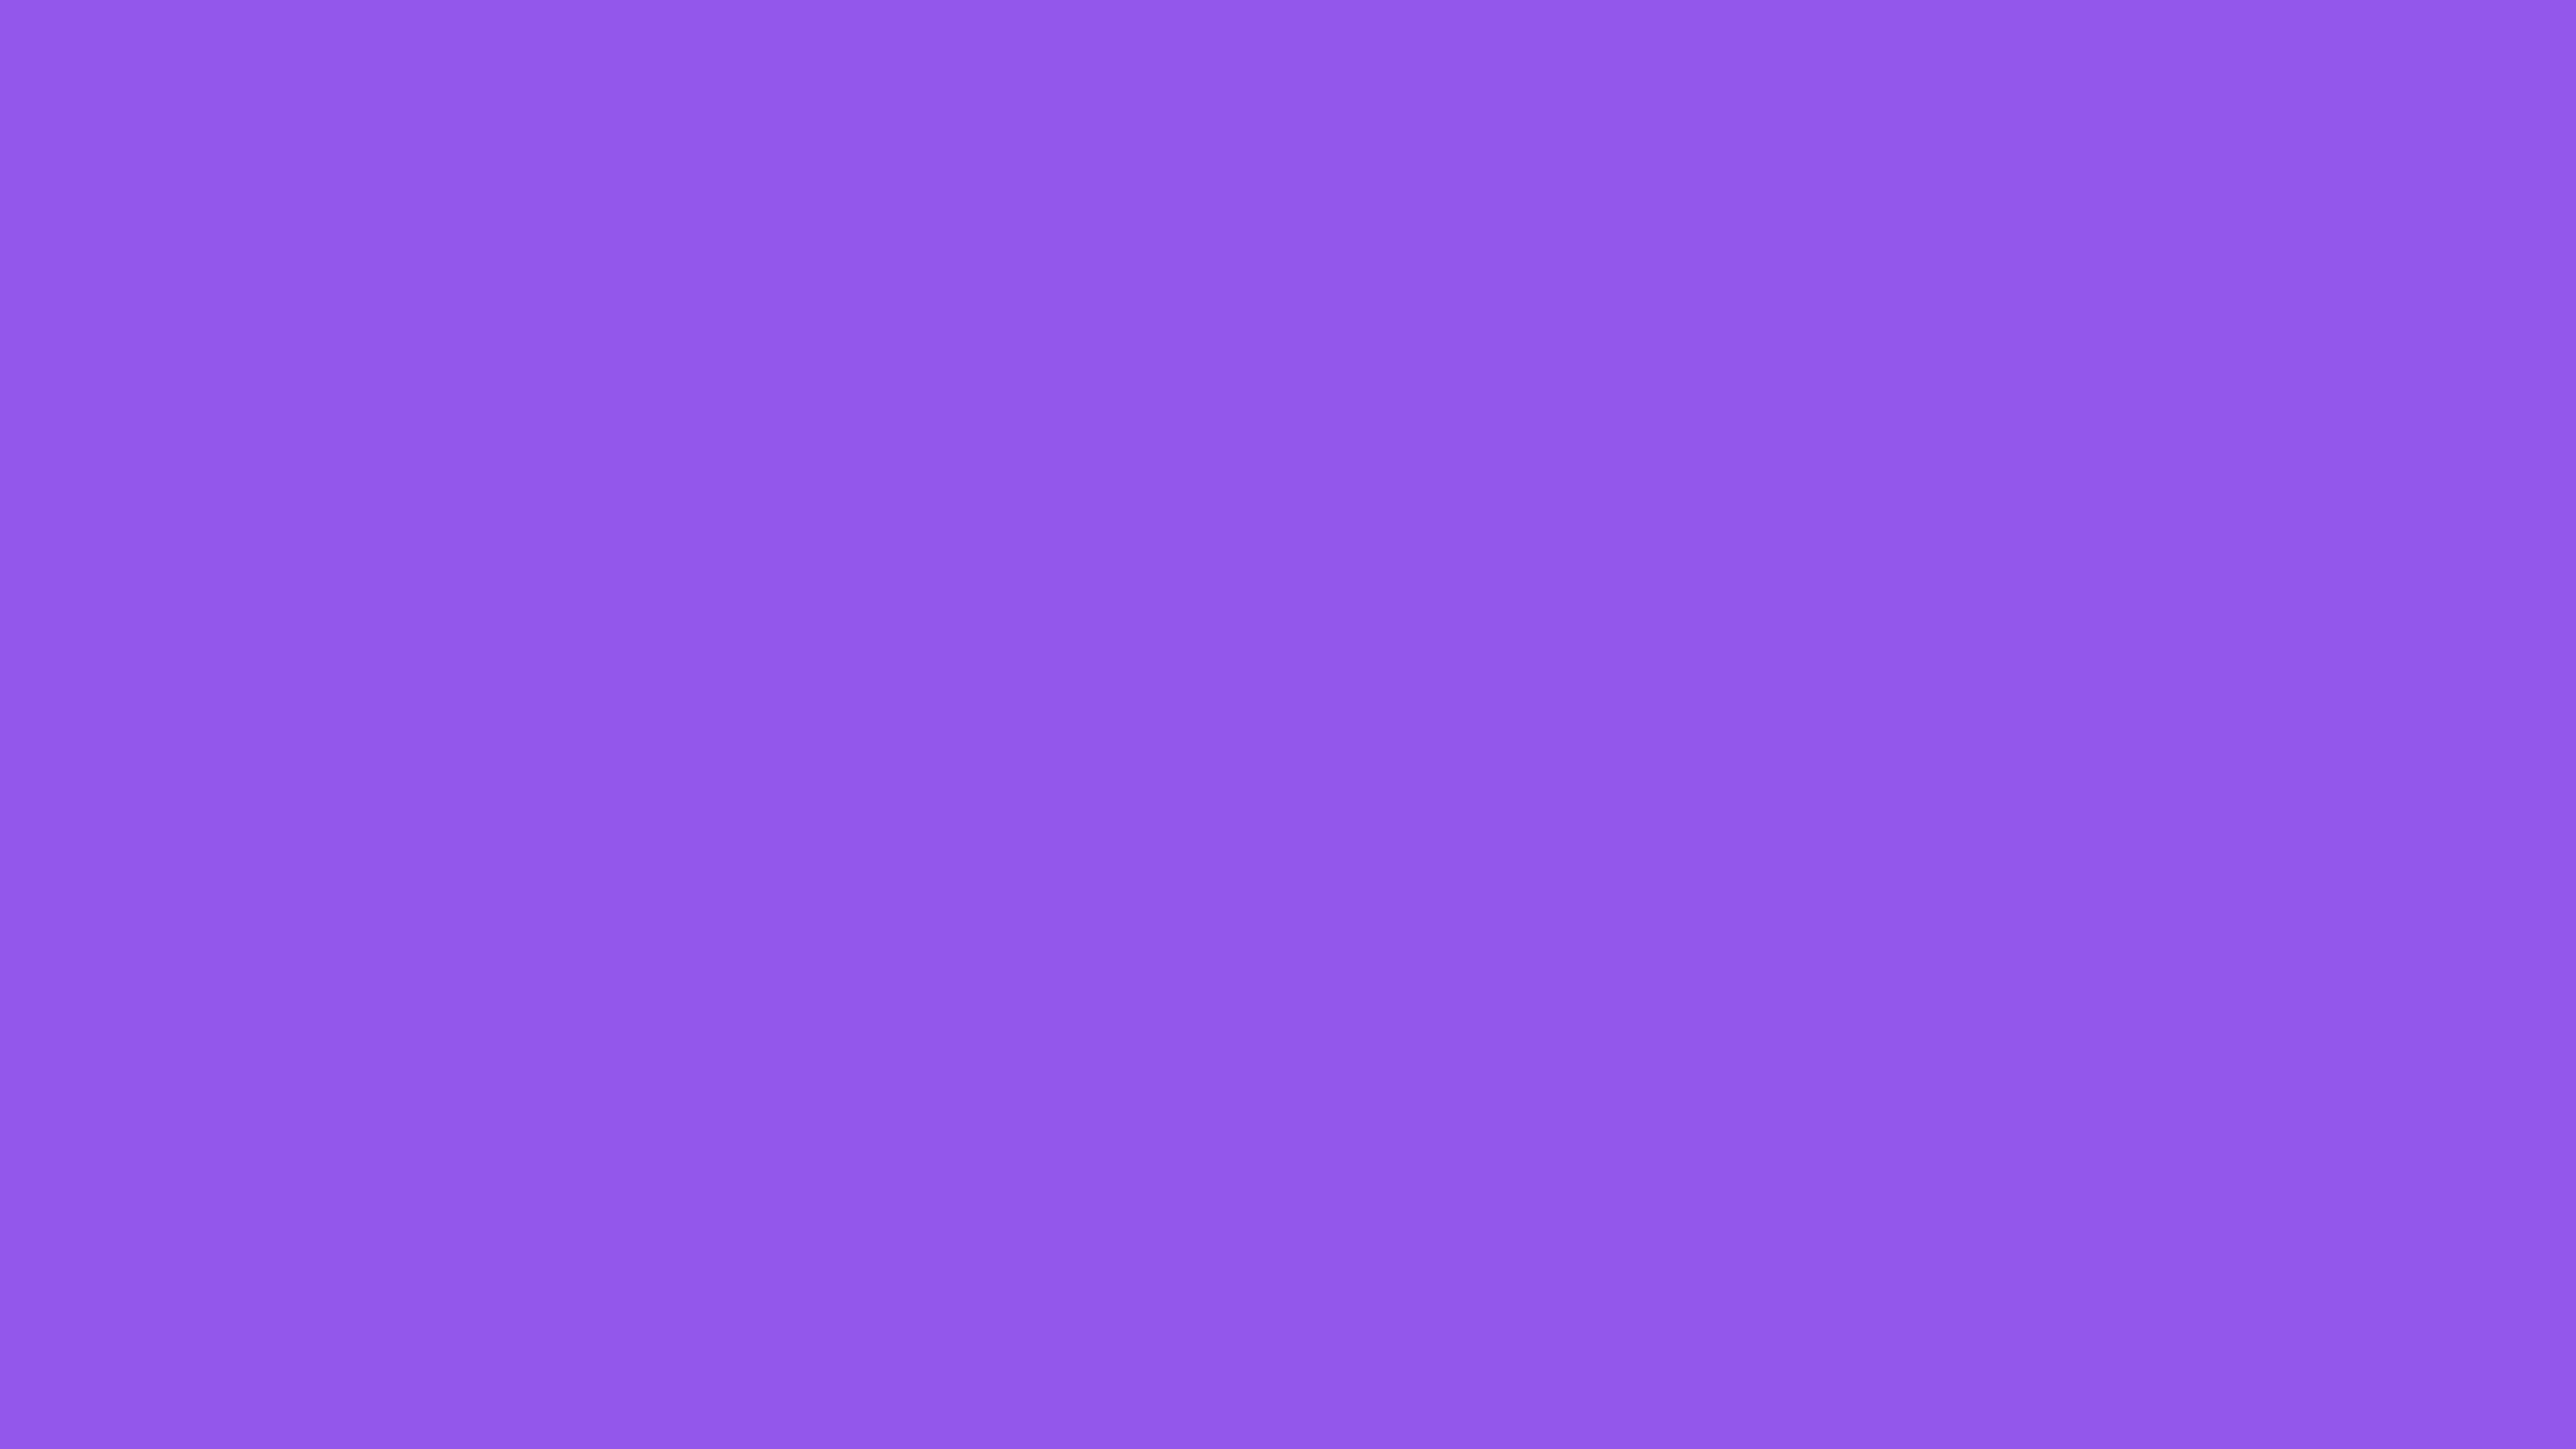 3840x2160 Navy Purple Solid Color Background